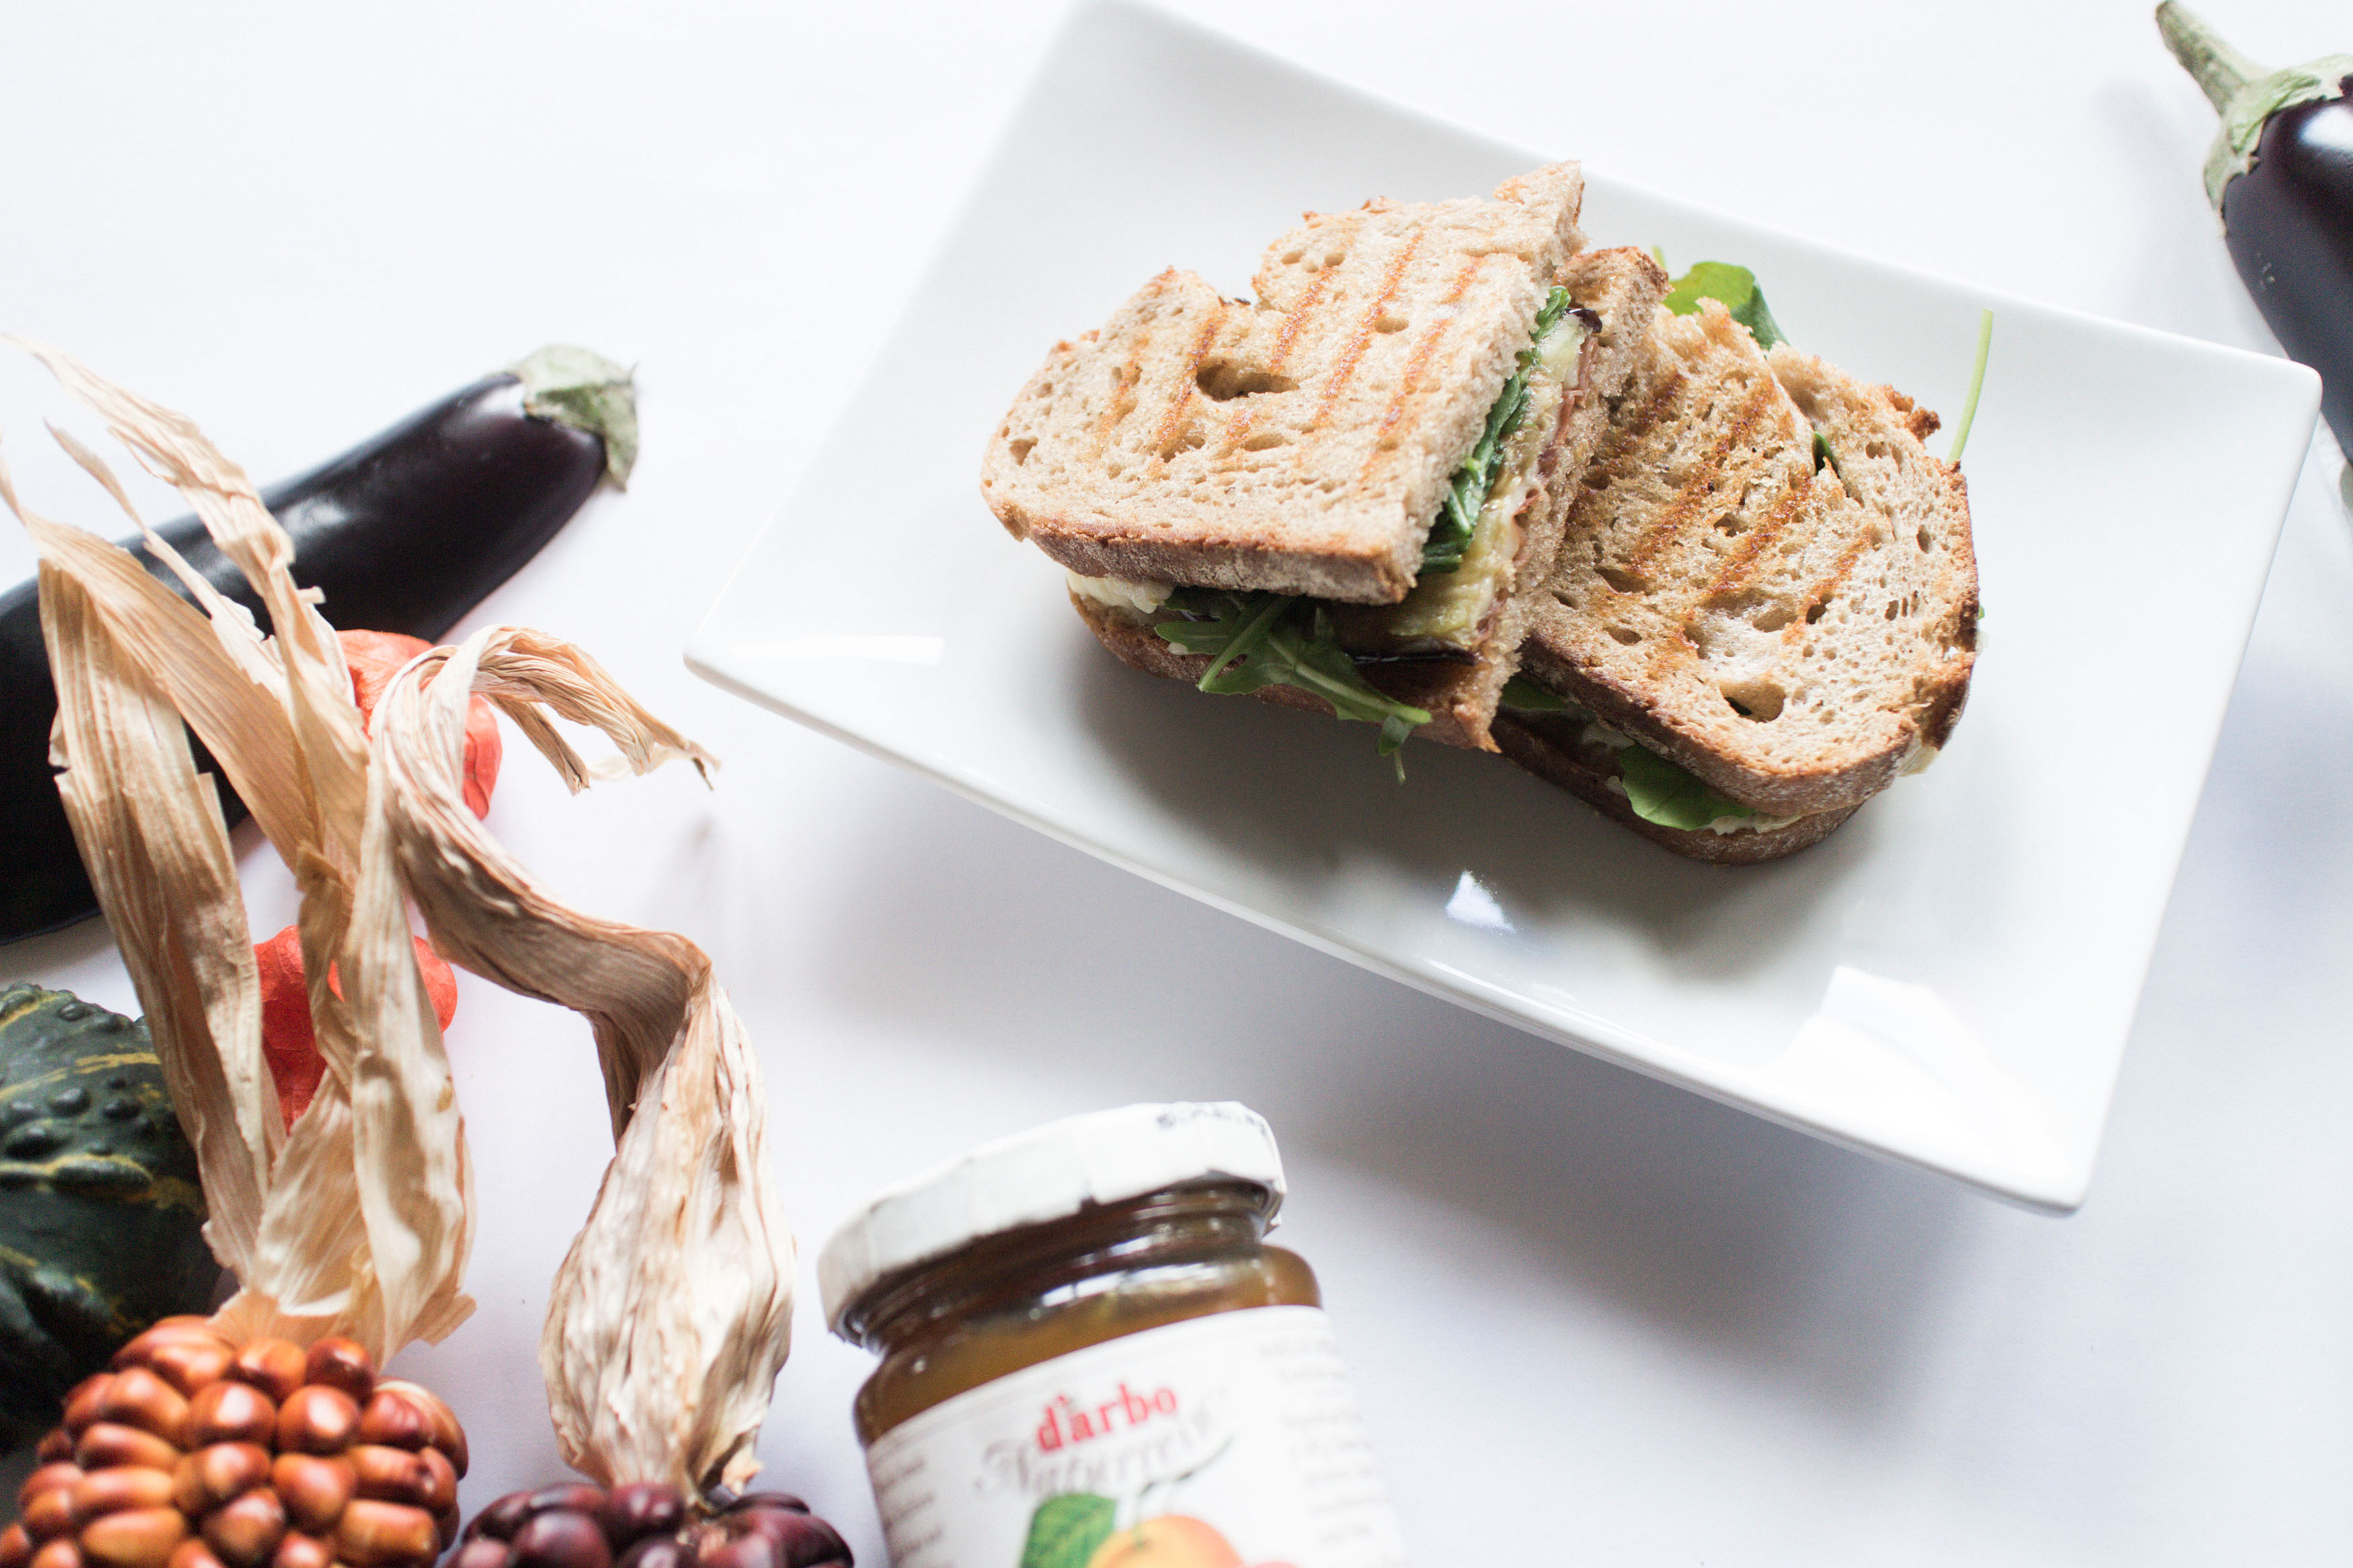 IHEARTALICE – Fashion, Travel, Lifestyle & Food Blog from Berlin/Germany by Alice M. Huynh: Grilled Cheese Sandwich with Eggplant by Yvi Huynh / Food Friday